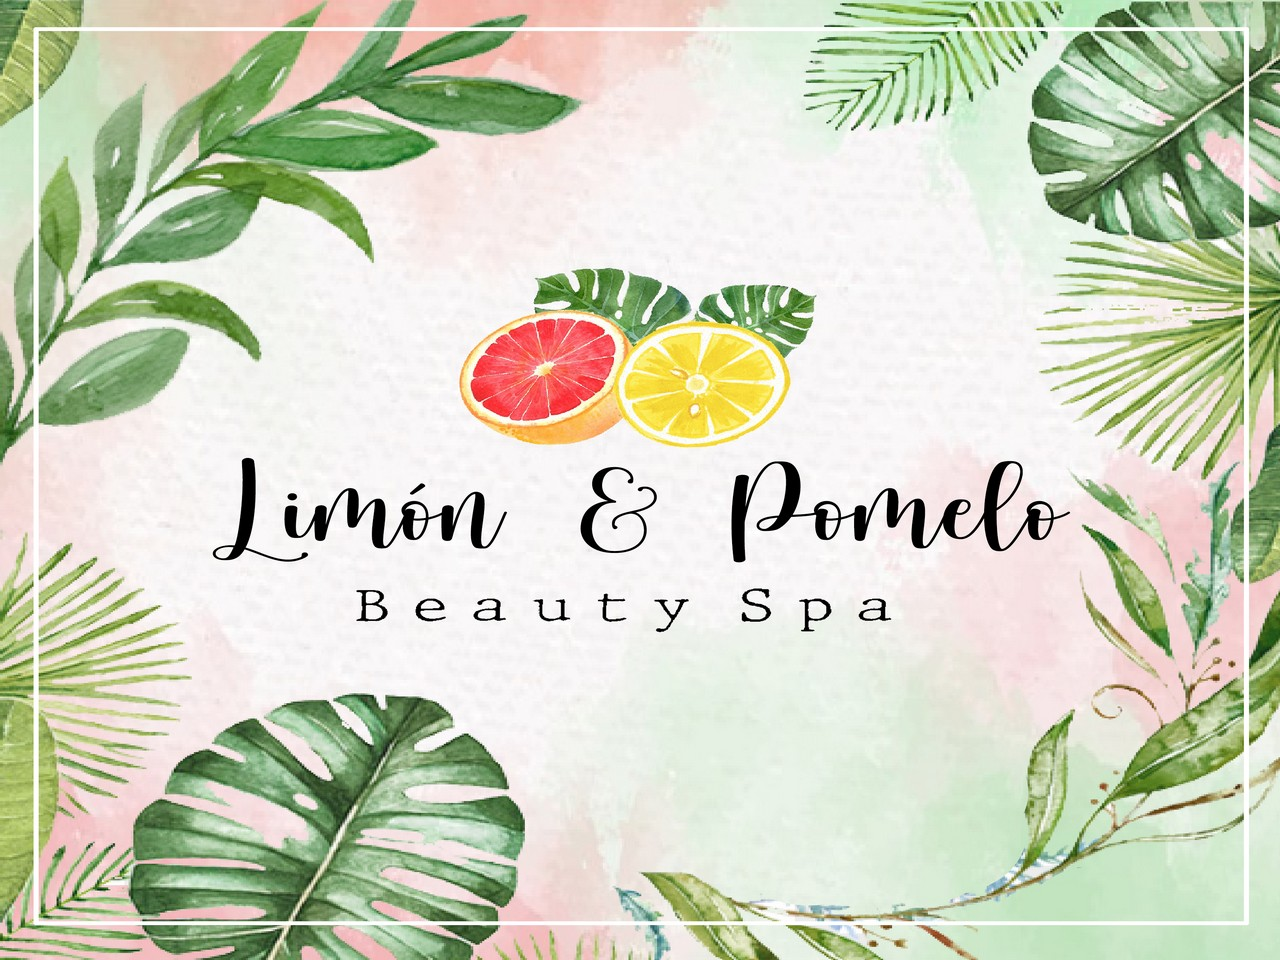 Limón & Pomelo Beauty Spa - Sandi